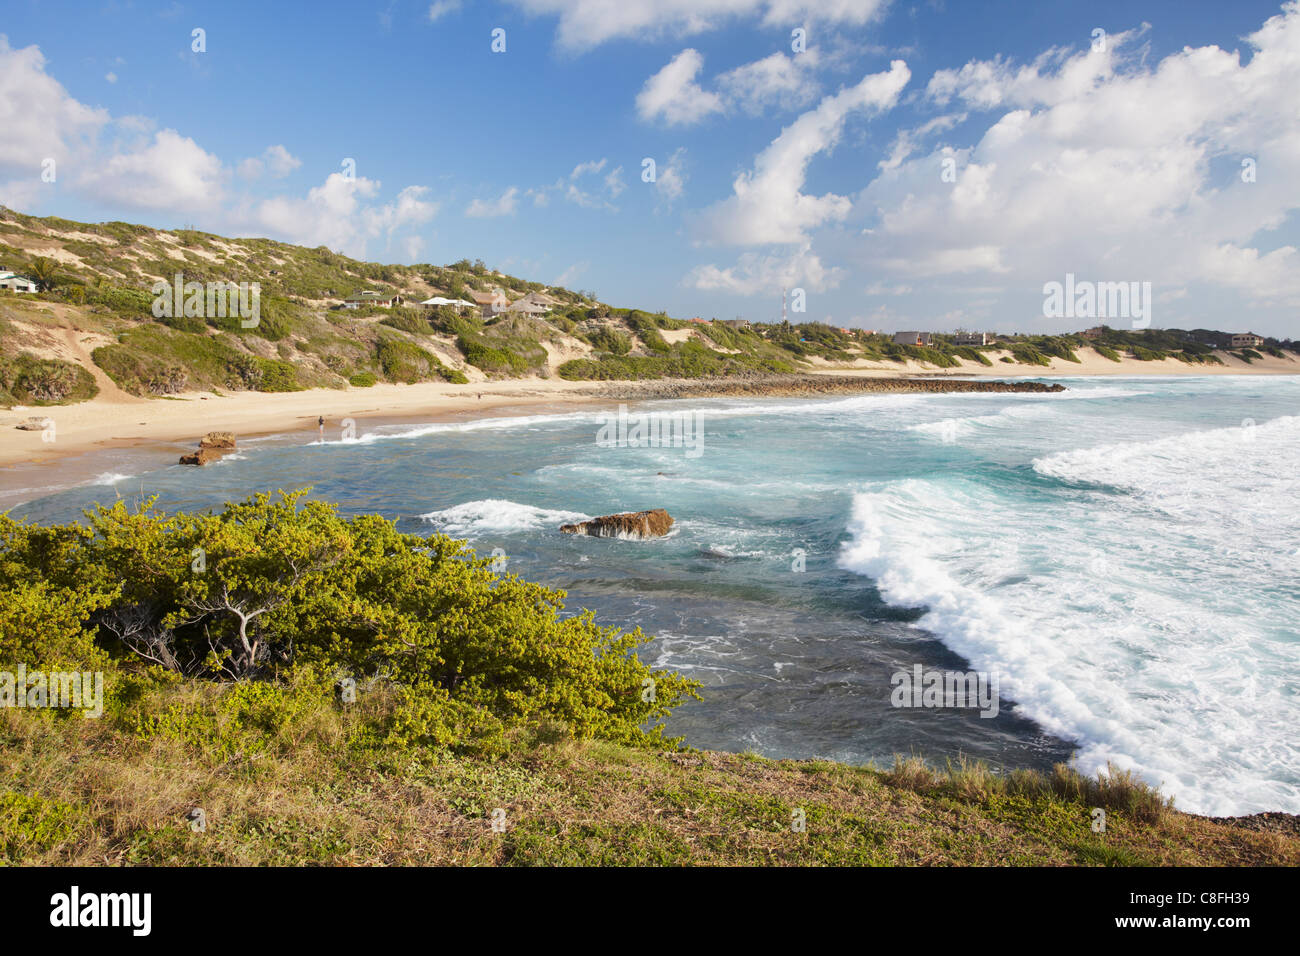 Tofo beach, Tofo, Inhambane, Mozambique - Stock Image